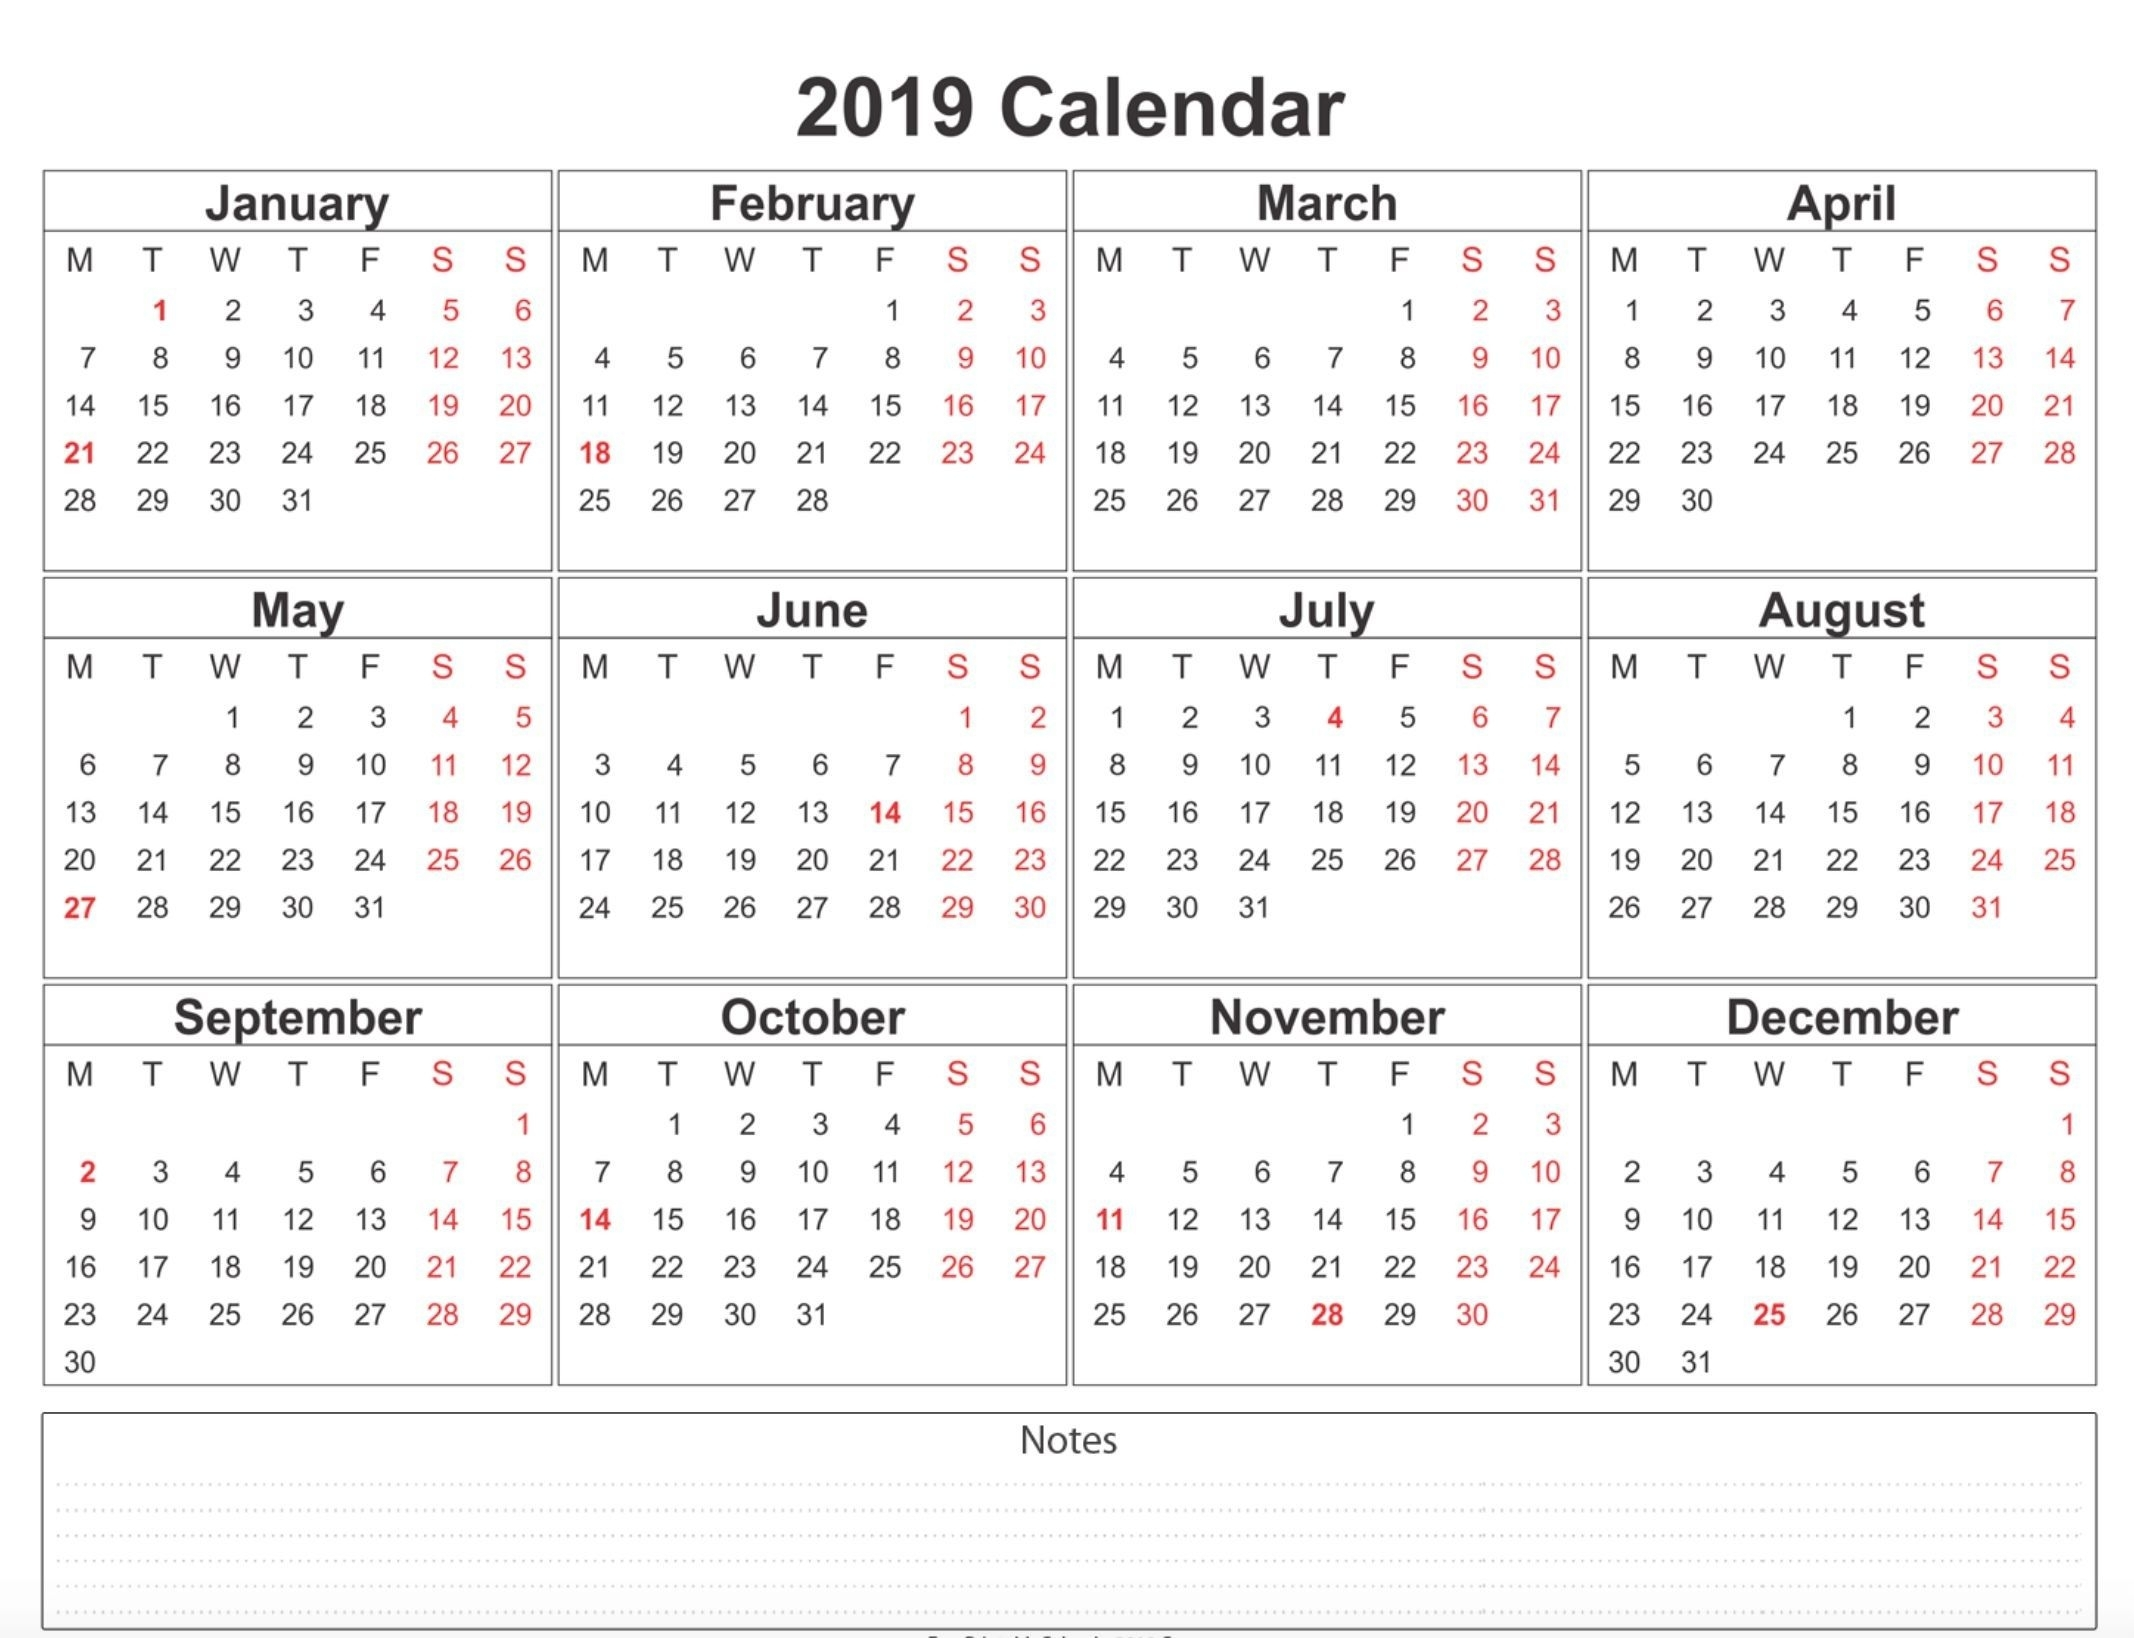 2019 Weekly Calendar Printable | 2019 Calendars | 12 Month Calendar pertaining to Printable Calendars By Month And Week